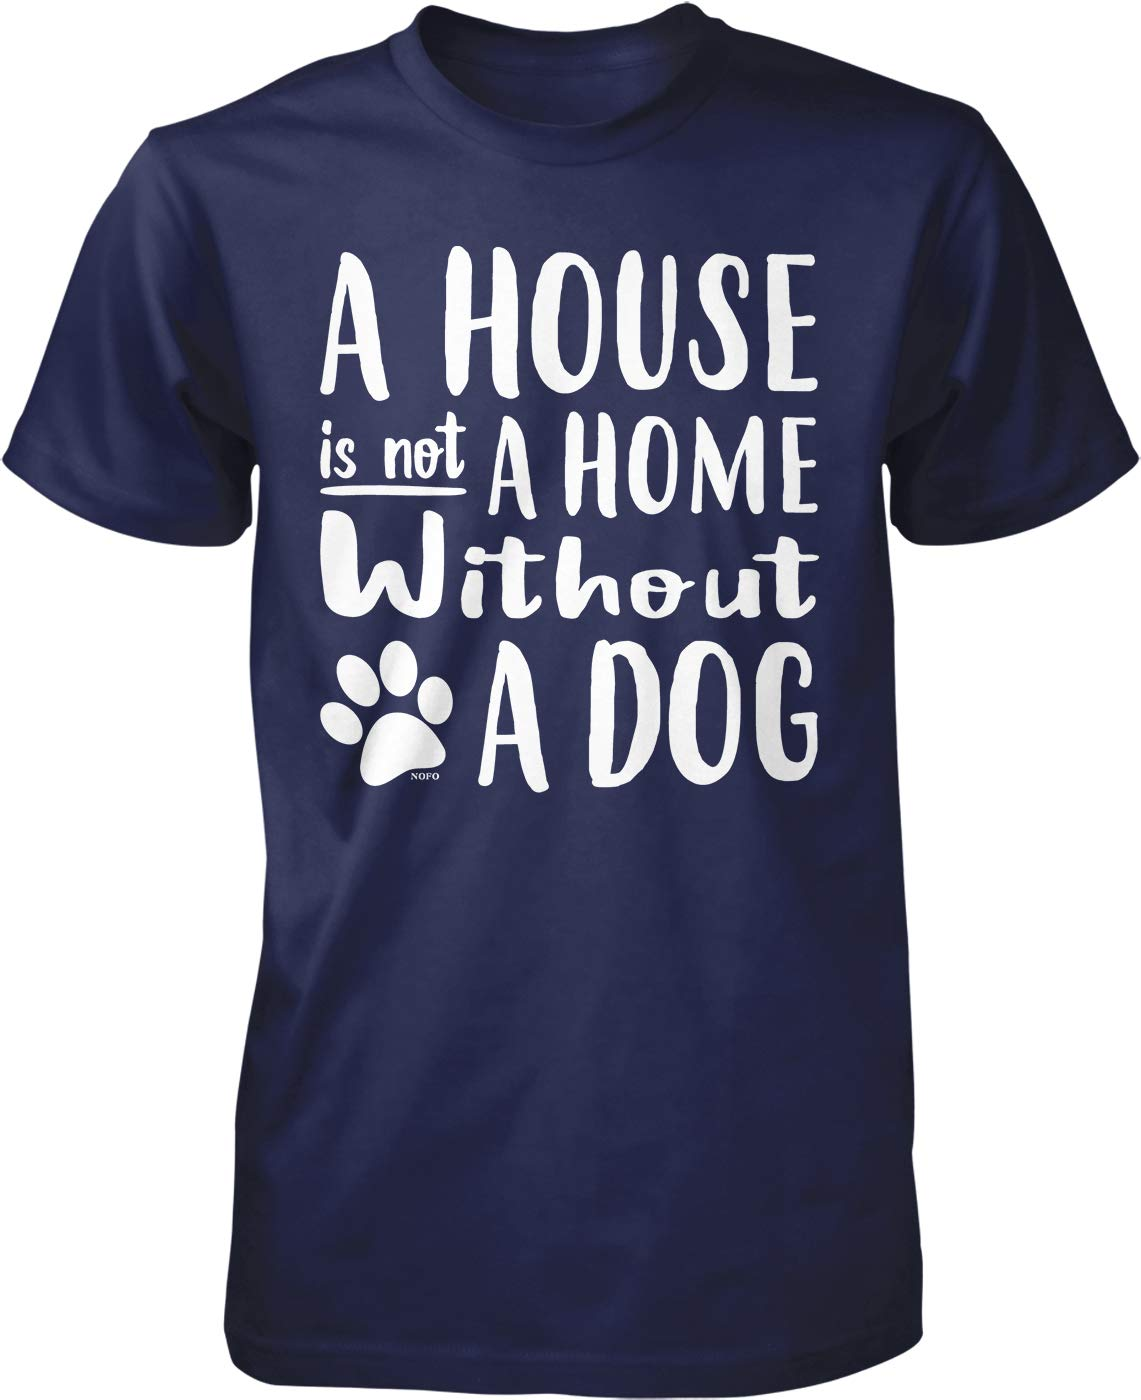 A House Is Not A Home Without A Dog T Shirt 4505